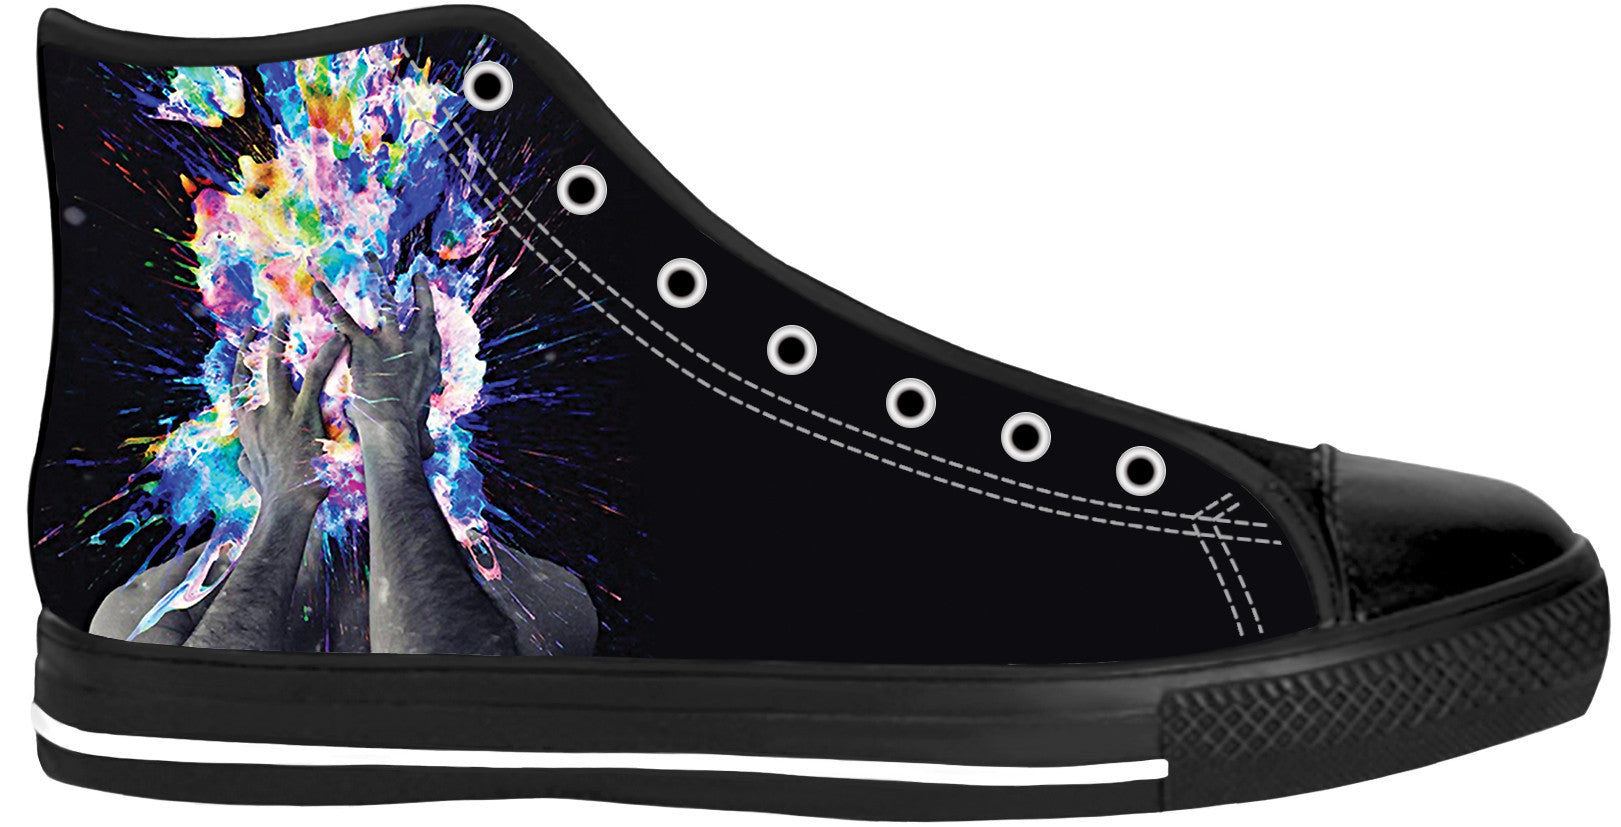 Artistic Bomb Black Sole High Tops